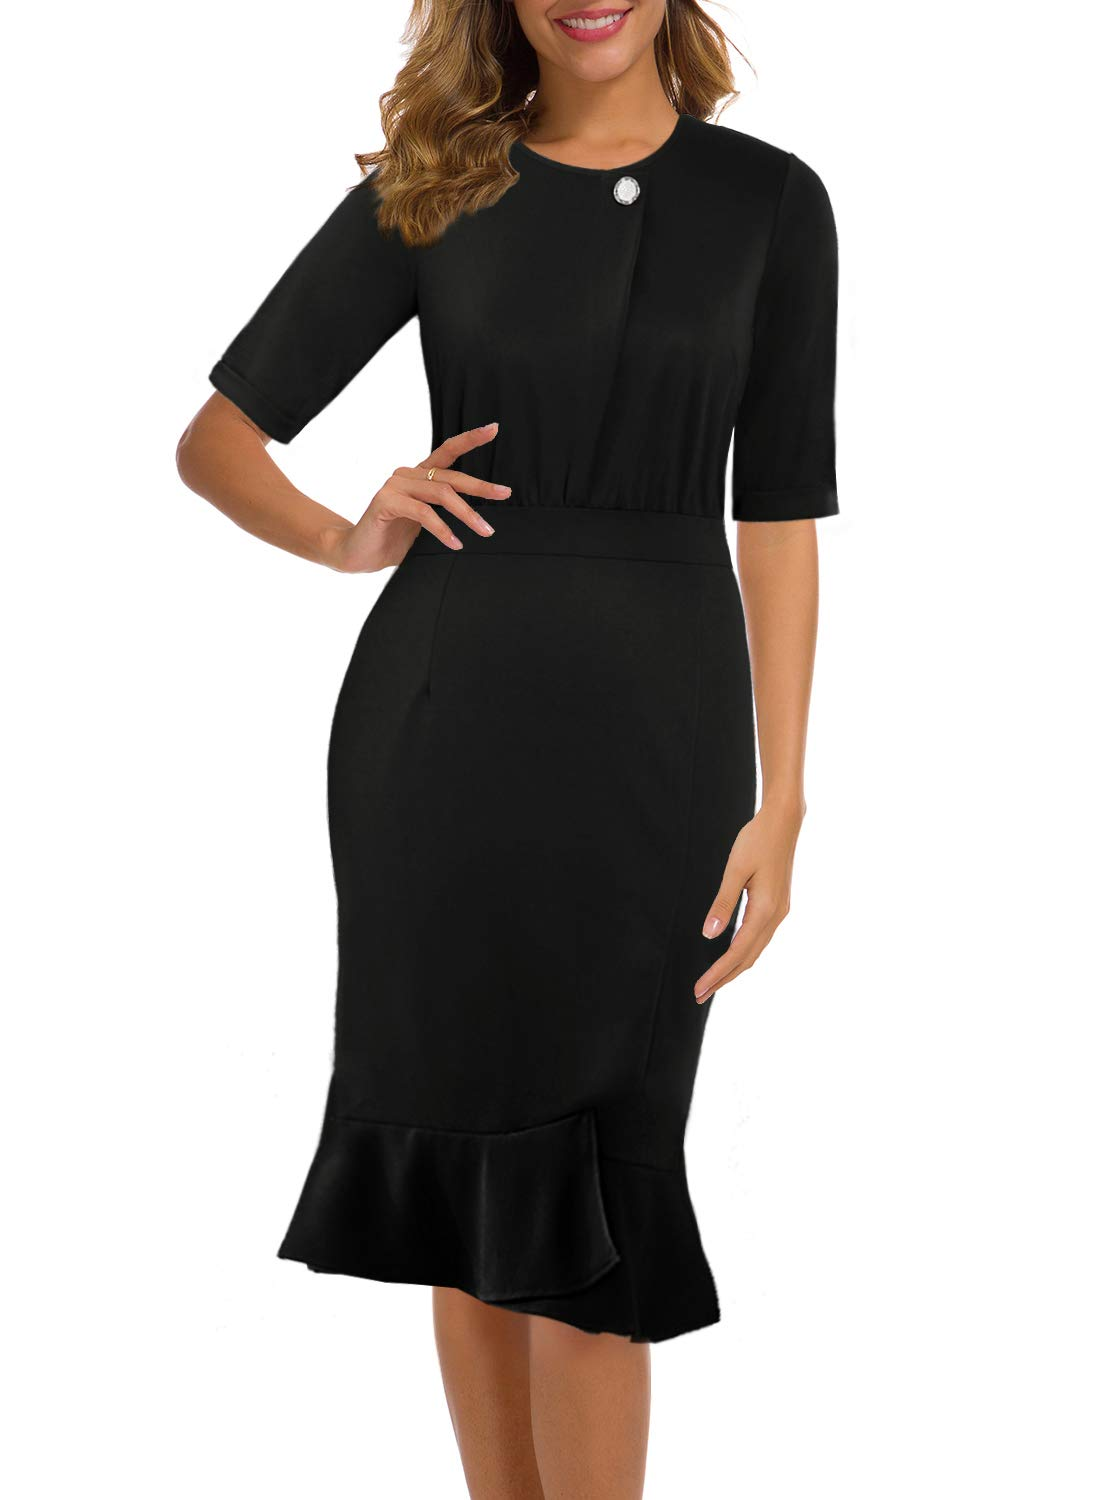 MSLG Women's 50s Elegant Half Sleeve Bodycon Casual Work Business Cocktail Party Sheath Pencil Dress